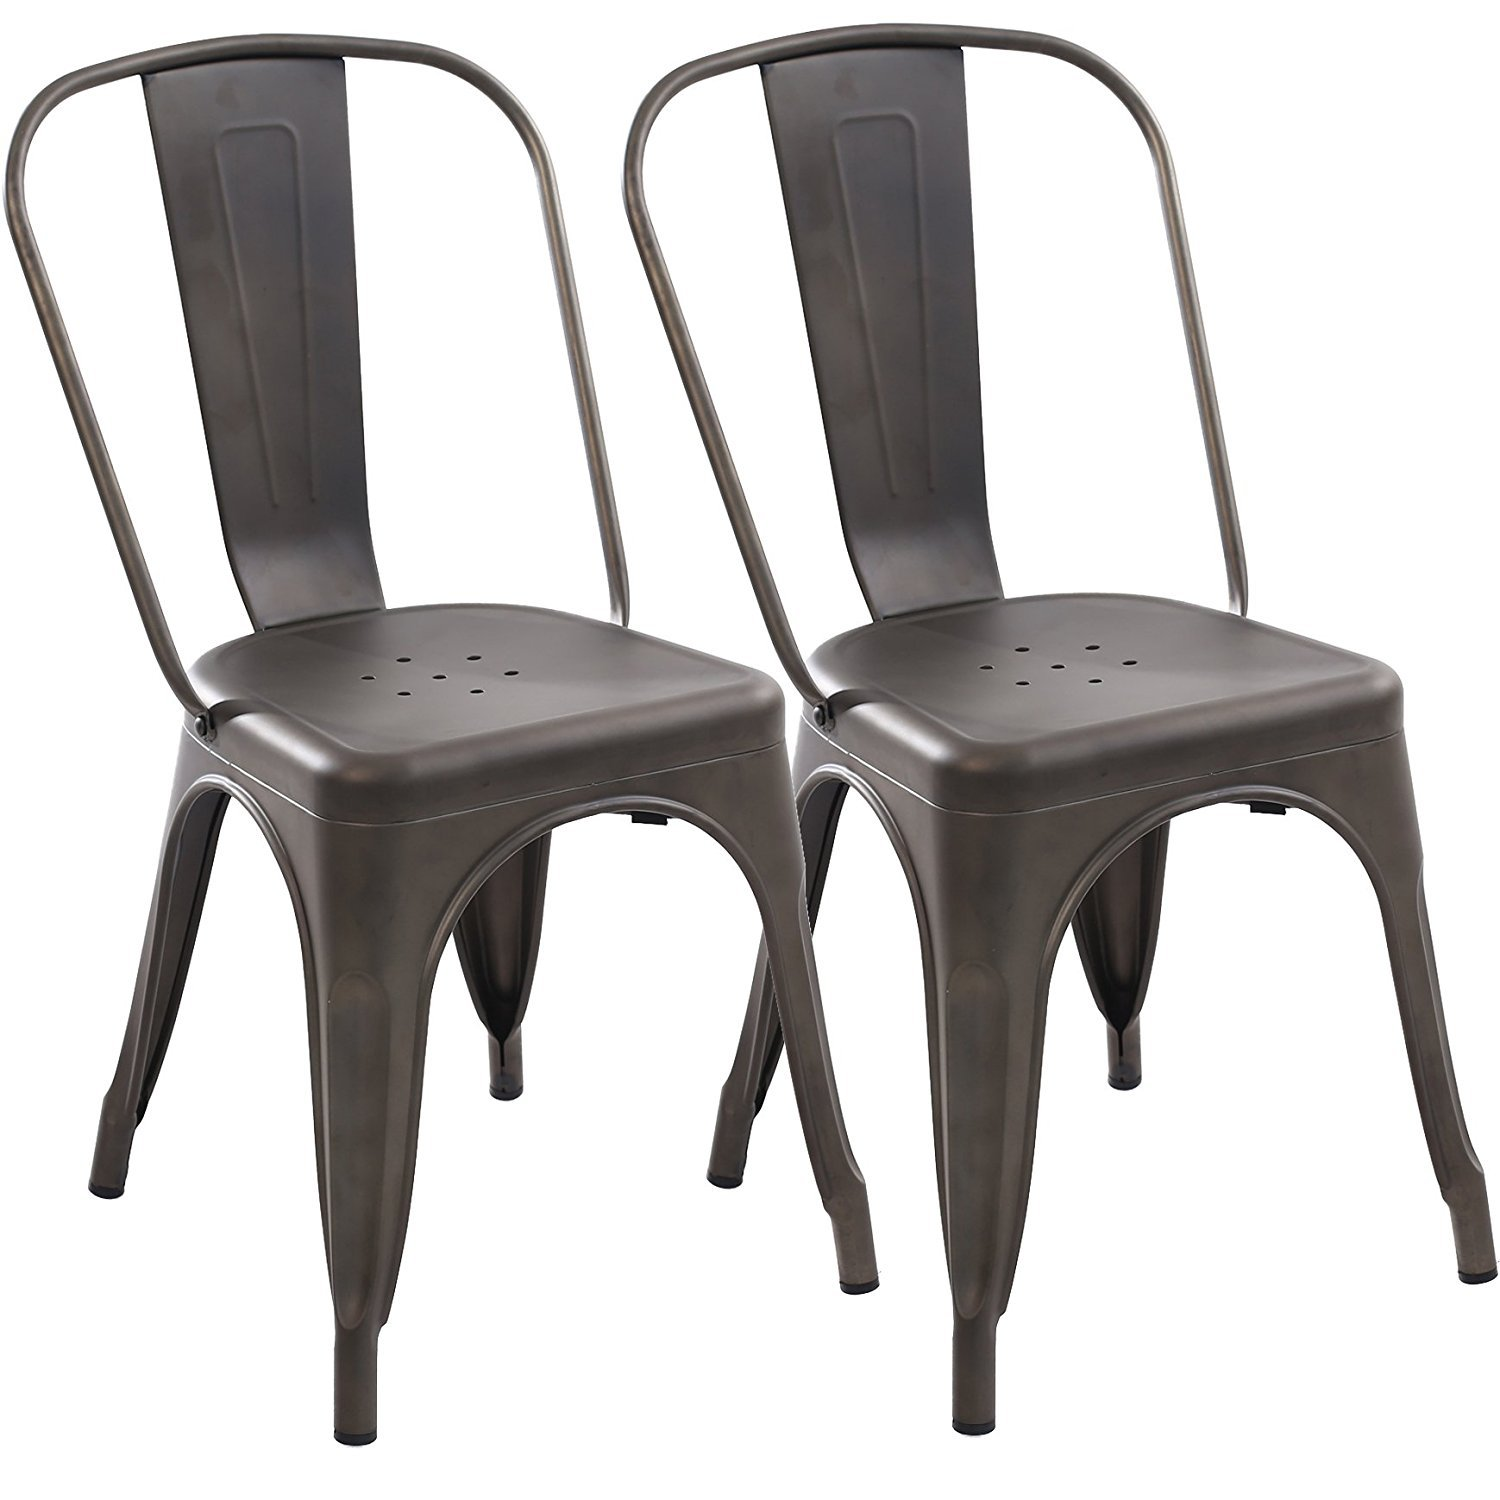 Poly and Bark Trattoria Side Chair in Bronze (Set of 2)